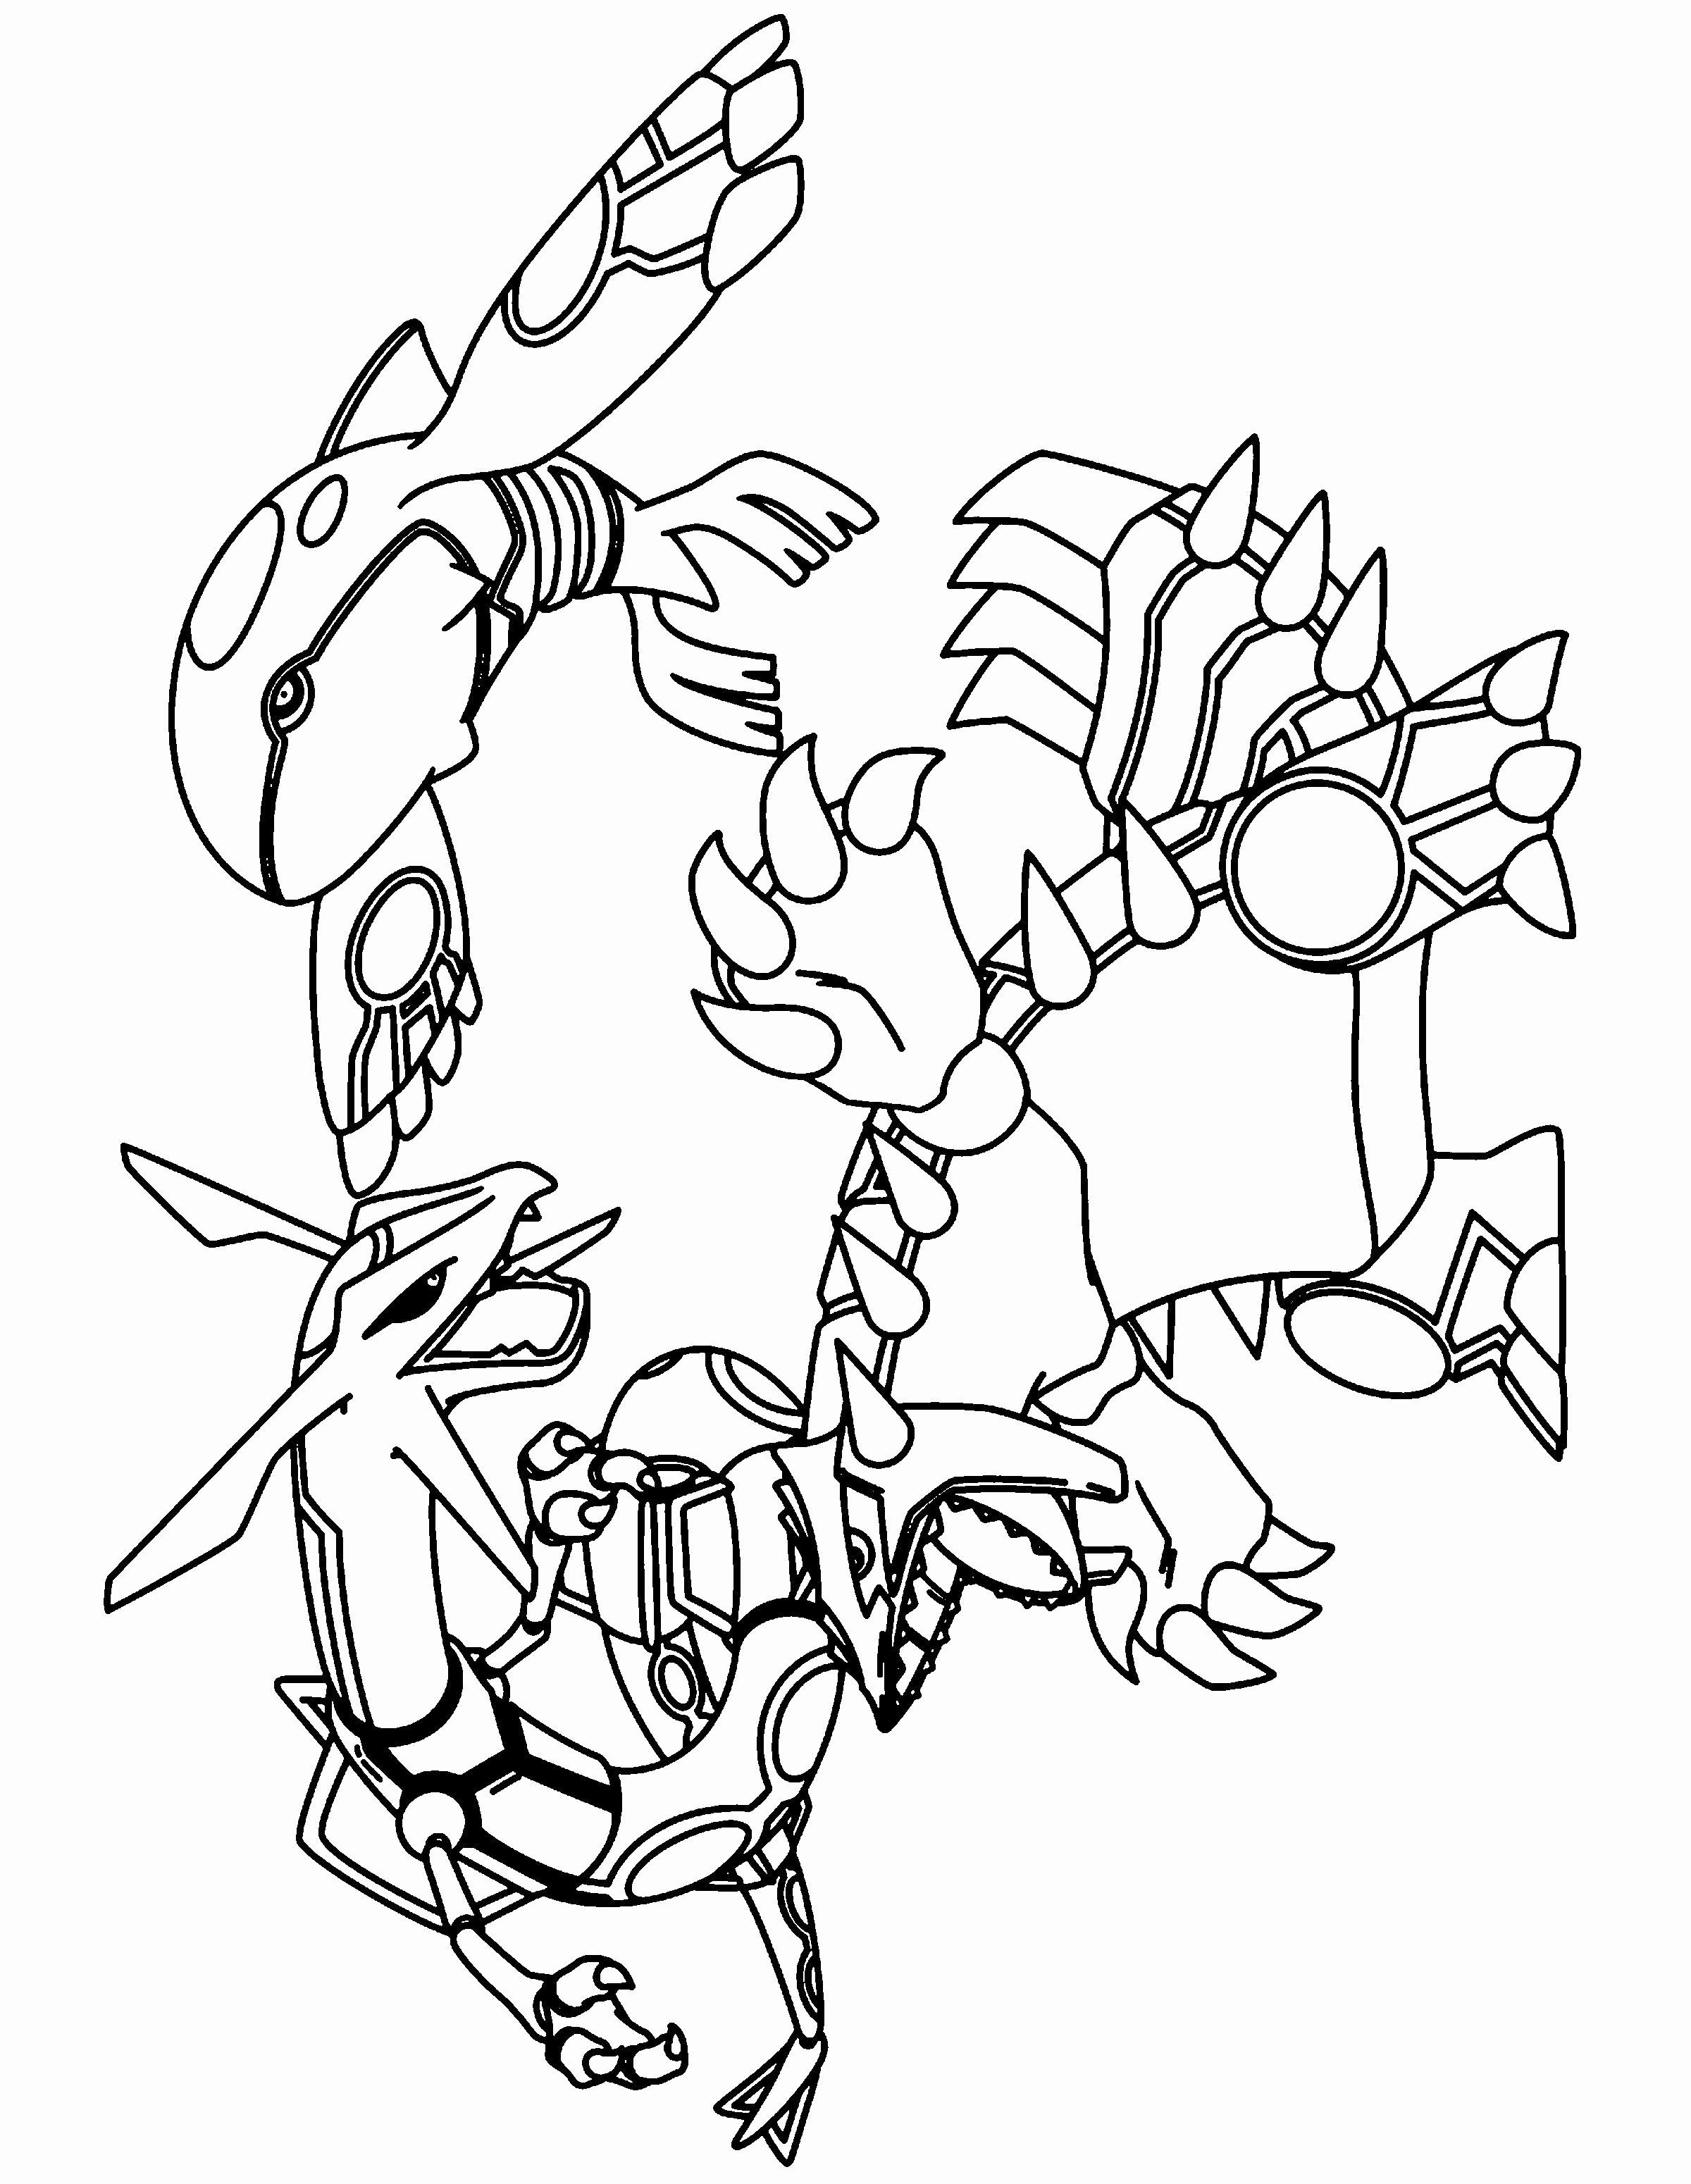 Arceus Pokemon Coloring Page Youngandtae Com Pokemon Coloring Pages Pokemon Sketch Pokemon Coloring